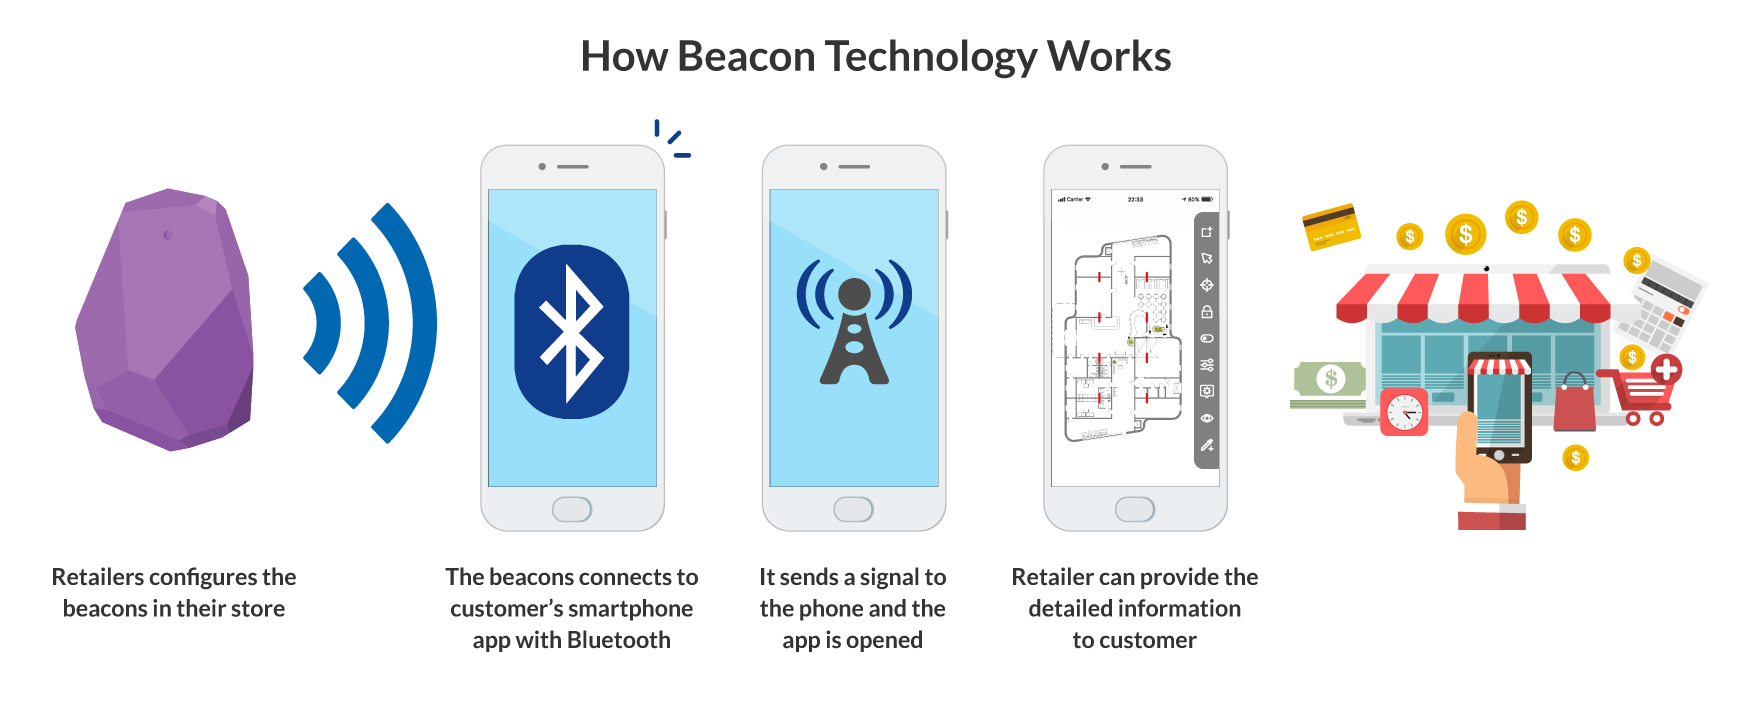 473787_delaPlex - How Beacon Technology Works